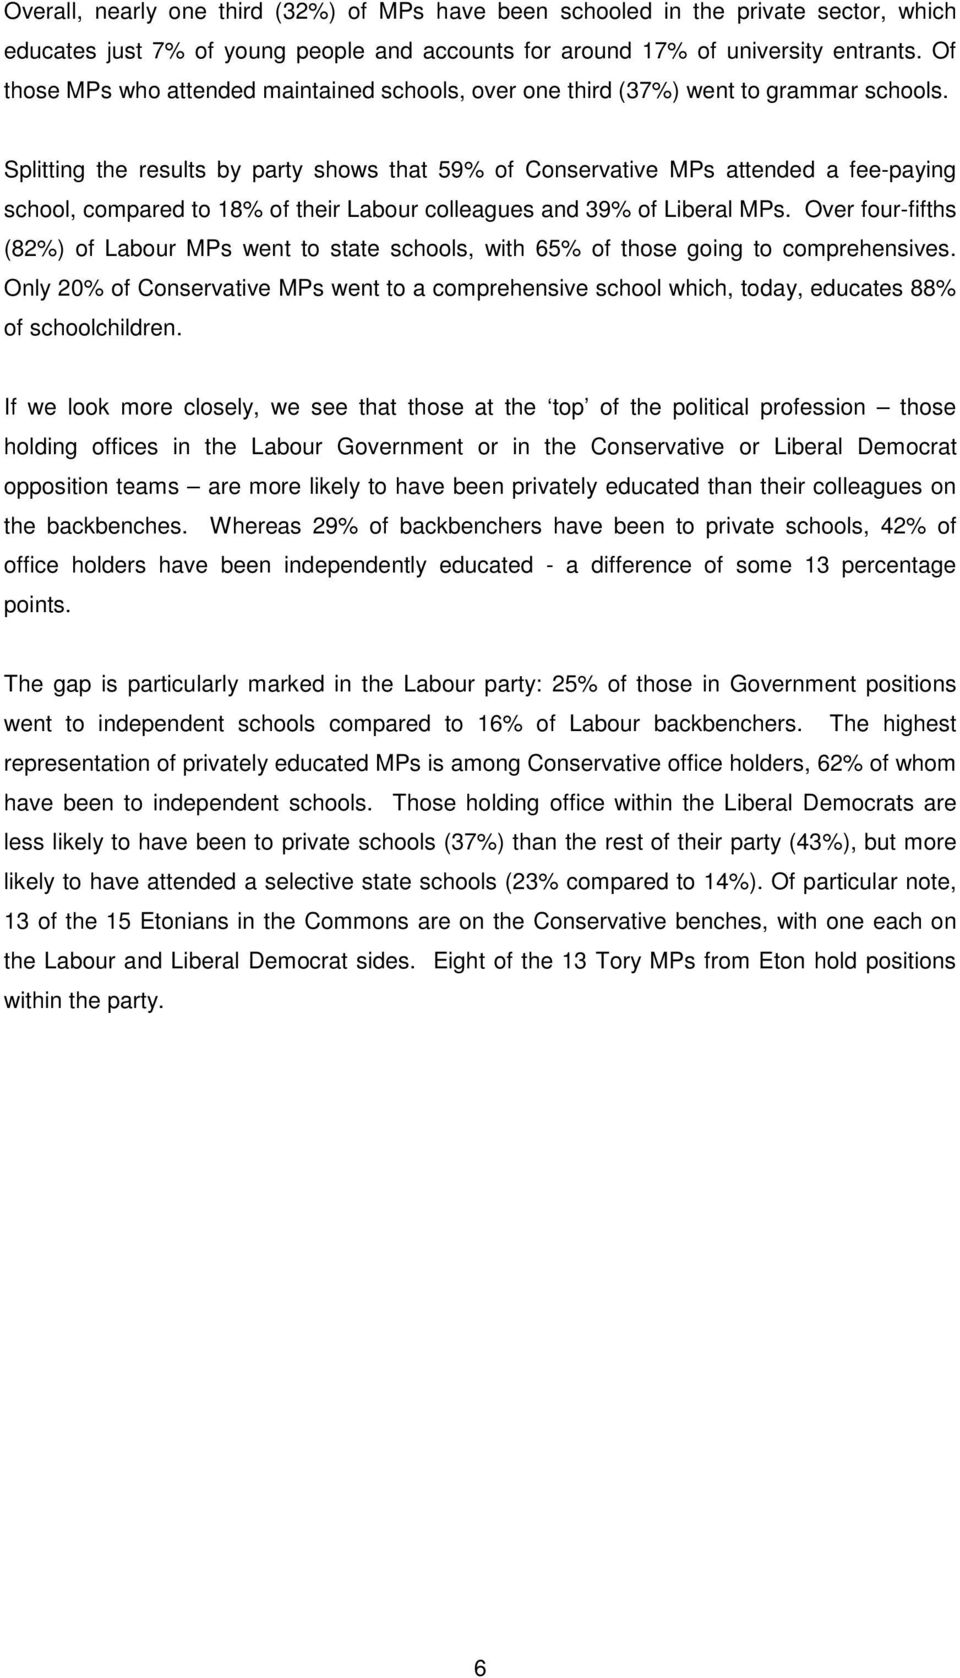 Splitting the results by party shows that 59% of Conservative MPs attended a fee-paying school, compared to 18% of their Labour colleagues and 39% of Liberal MPs.